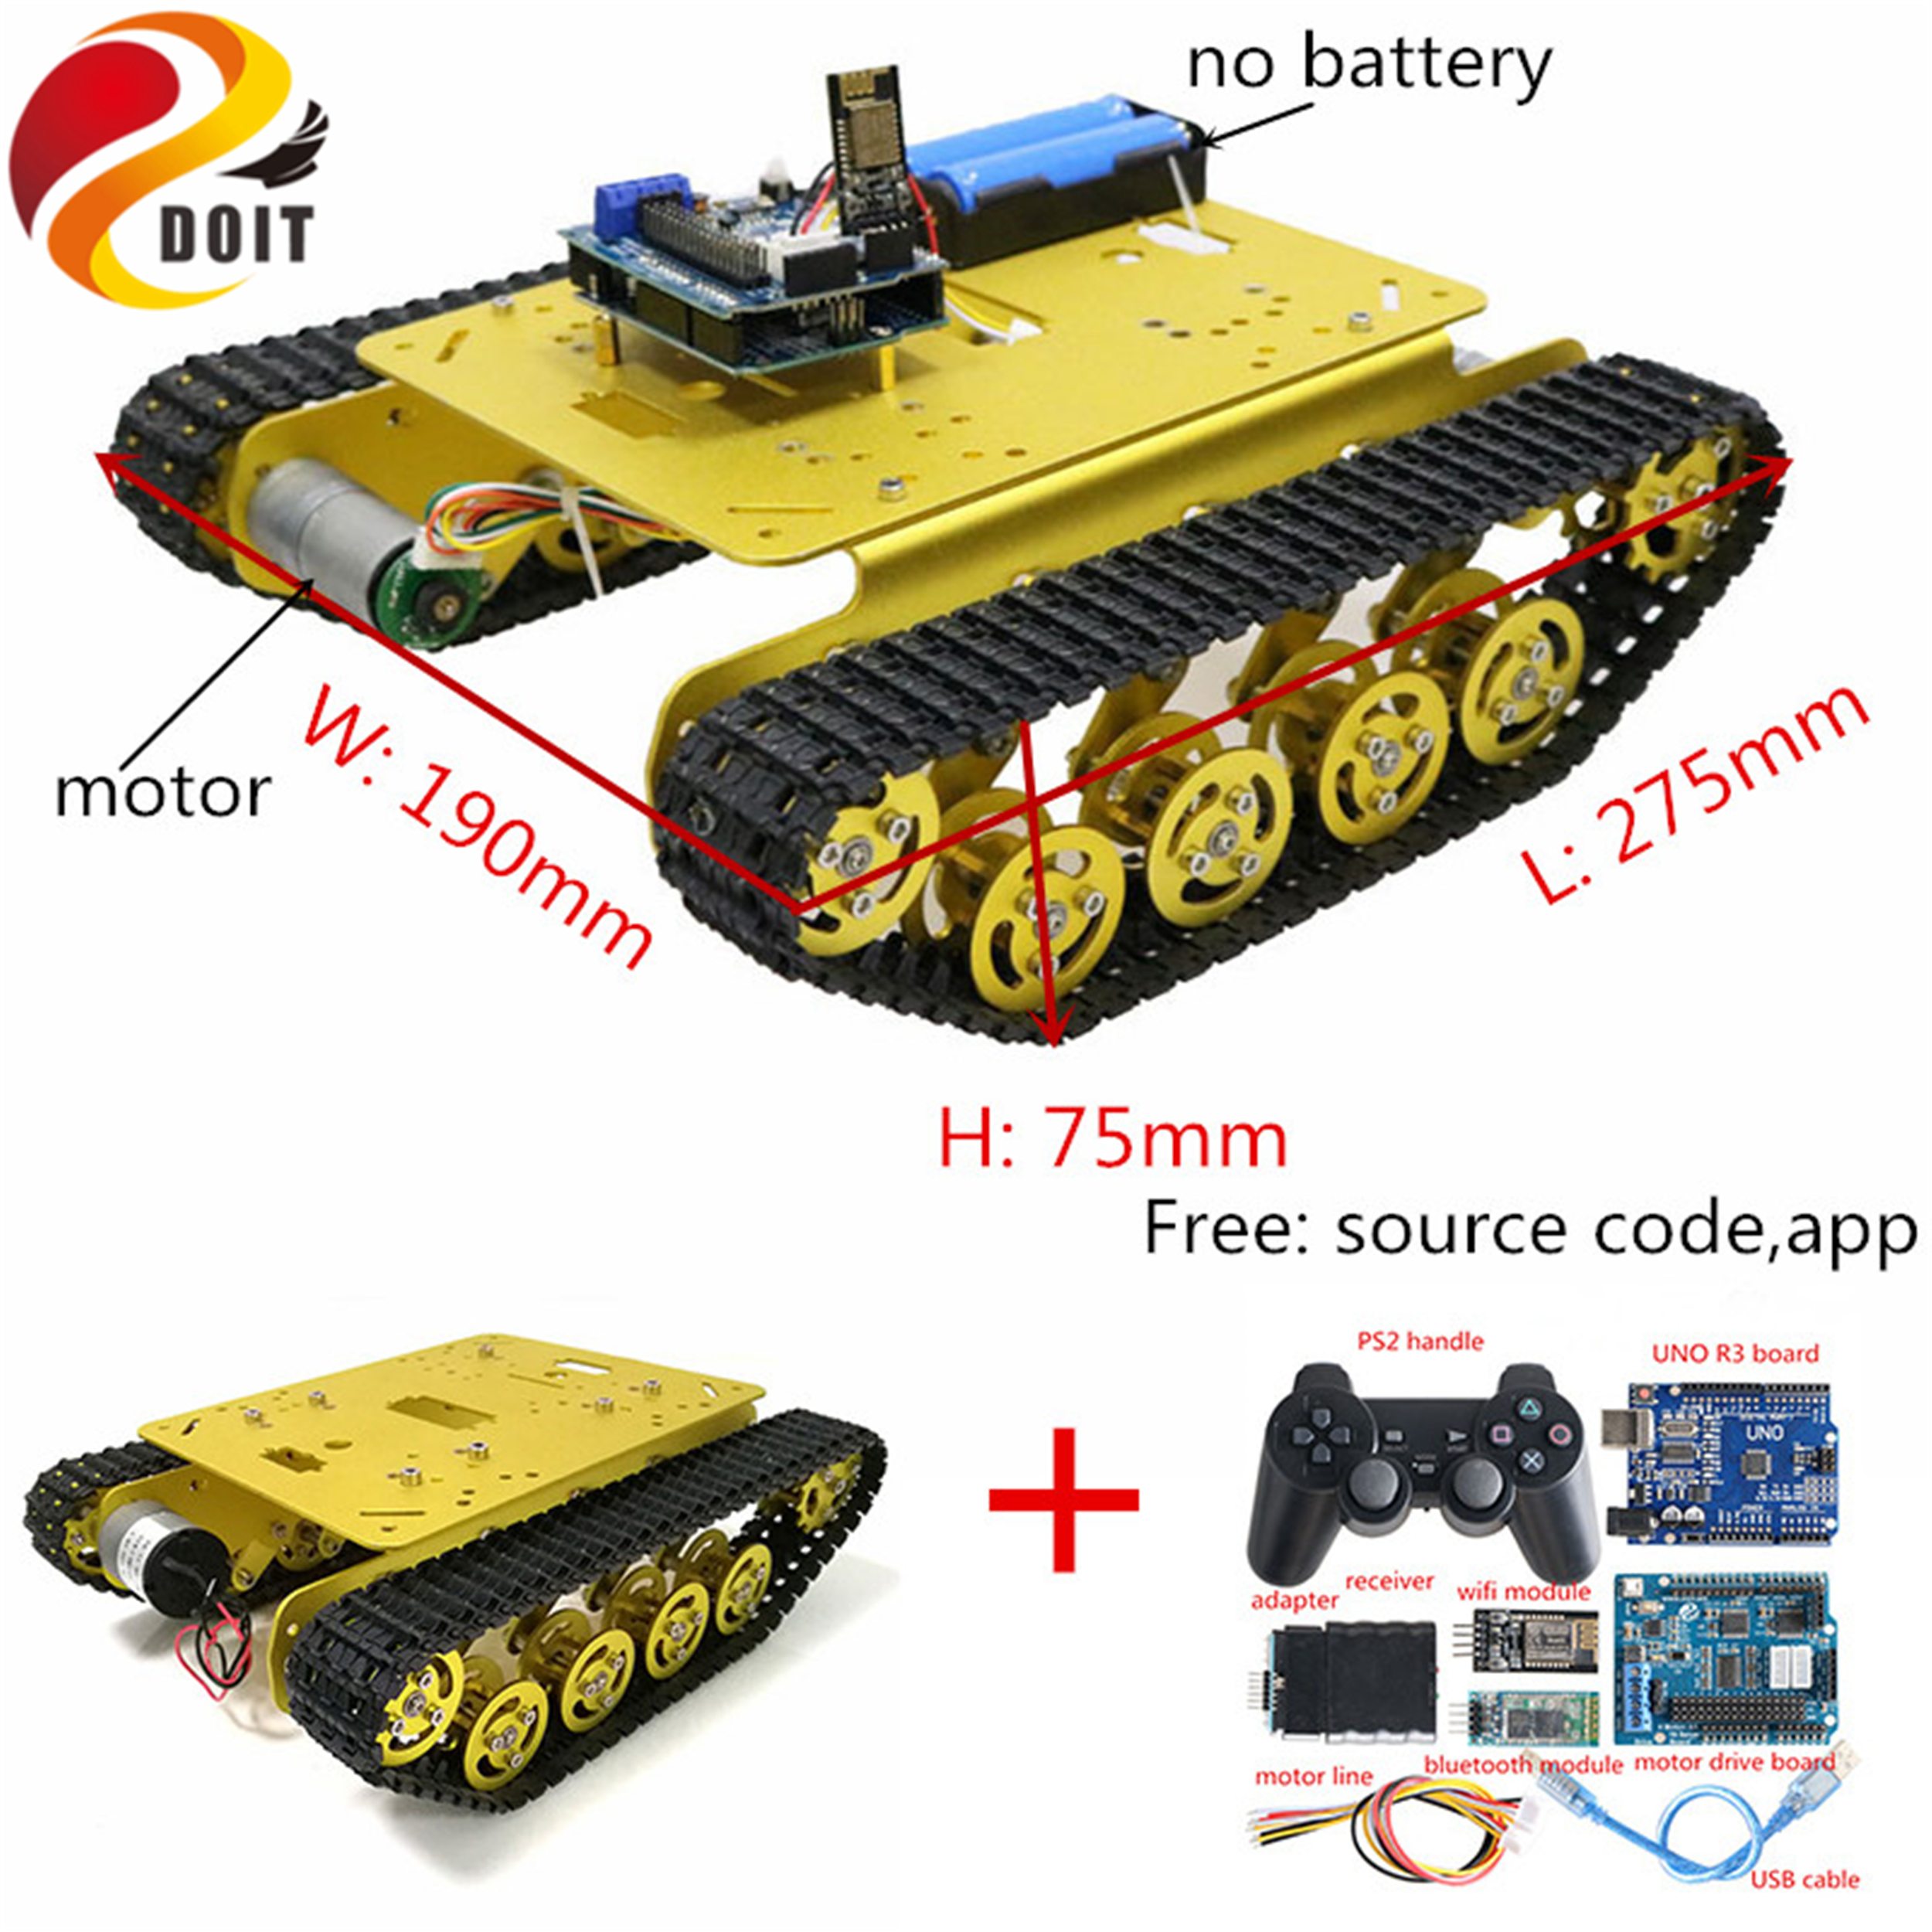 SZDOIT Wifi/Bluetooth/Handle Control <font><b>TS100</b></font> Metal Rc <font><b>Tank</b></font> Chassis Smart Crawler Shock Absorption Robot Kit DIY For Arduino Toys image